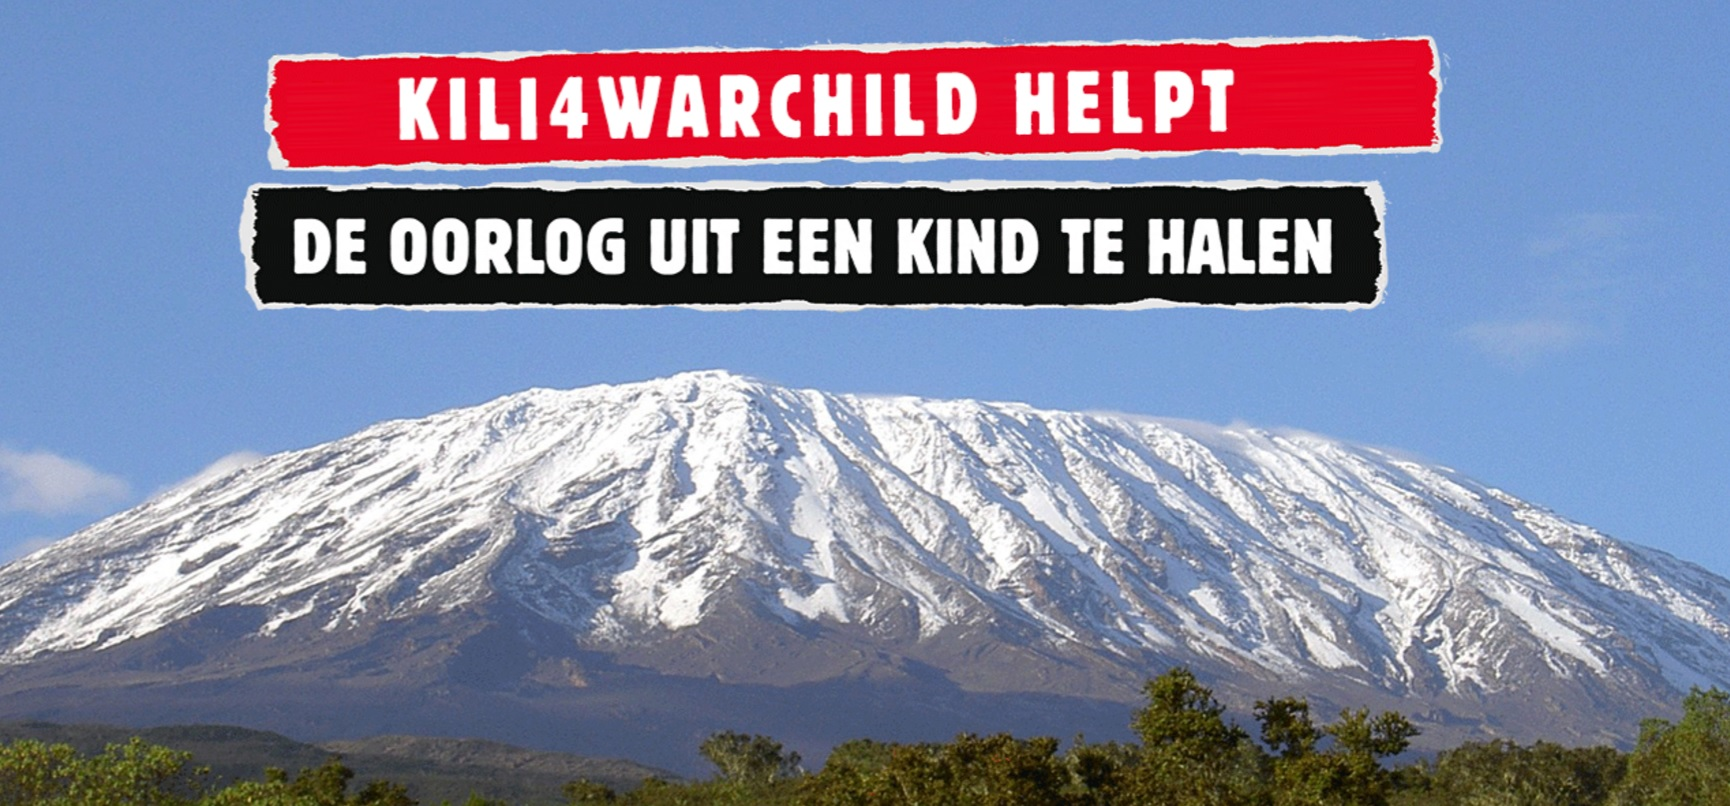 Kili4Warchild